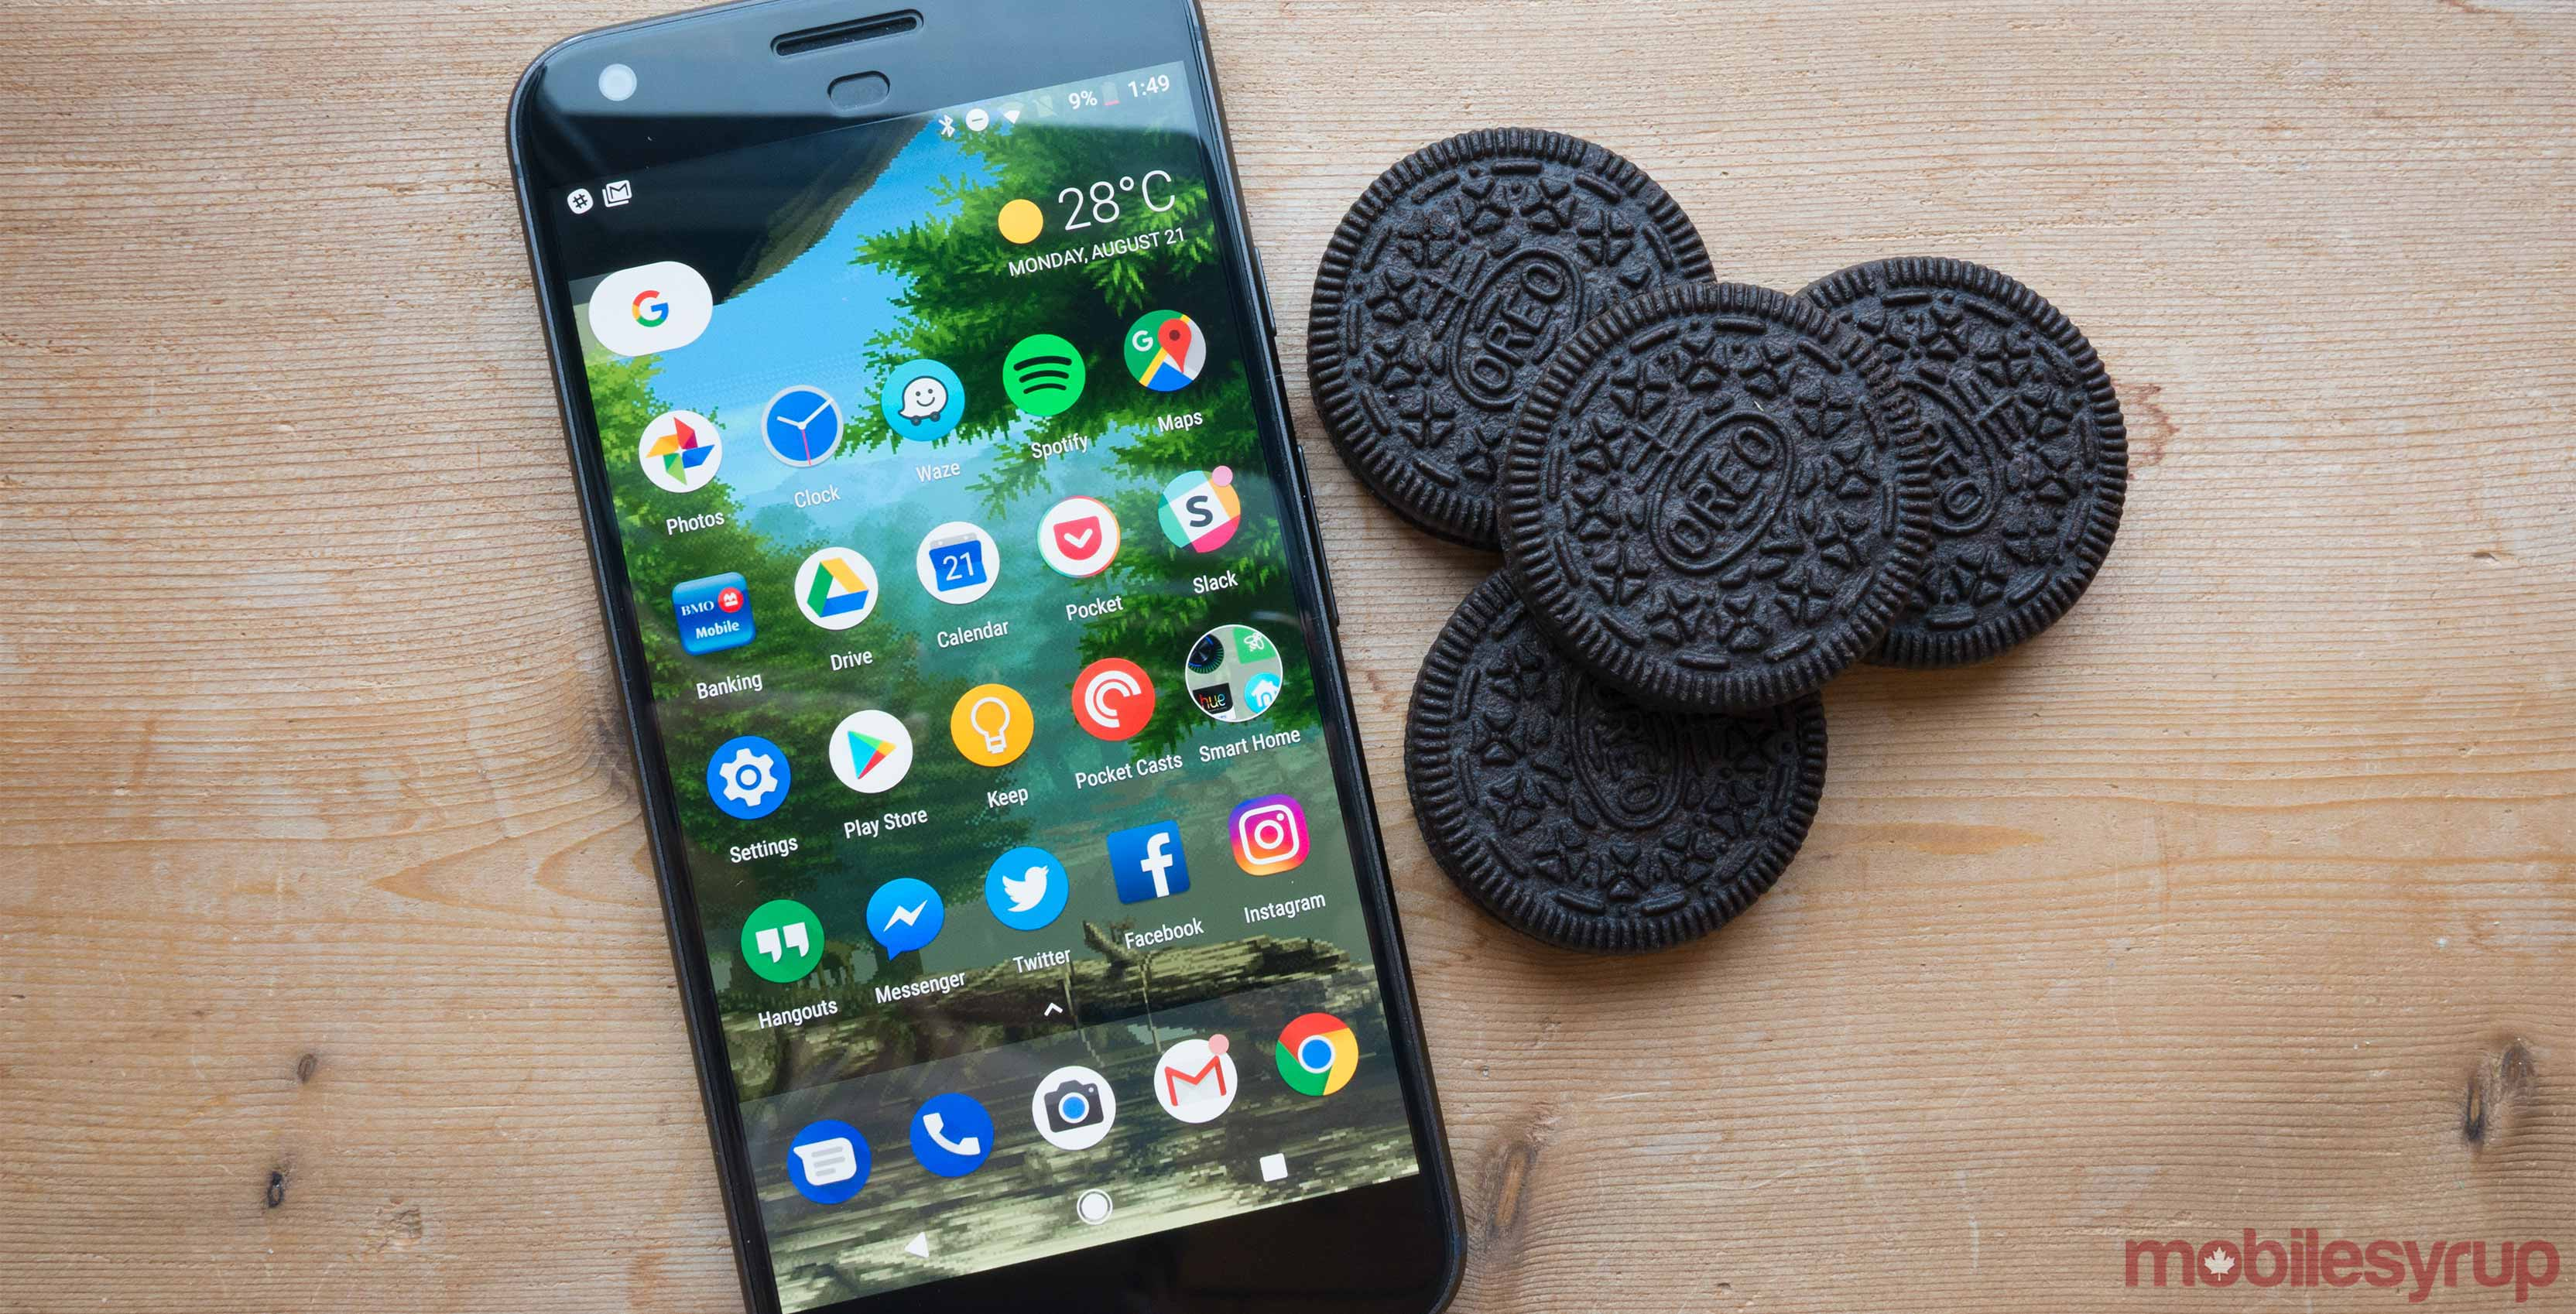 Pixel XL on table with Oreos